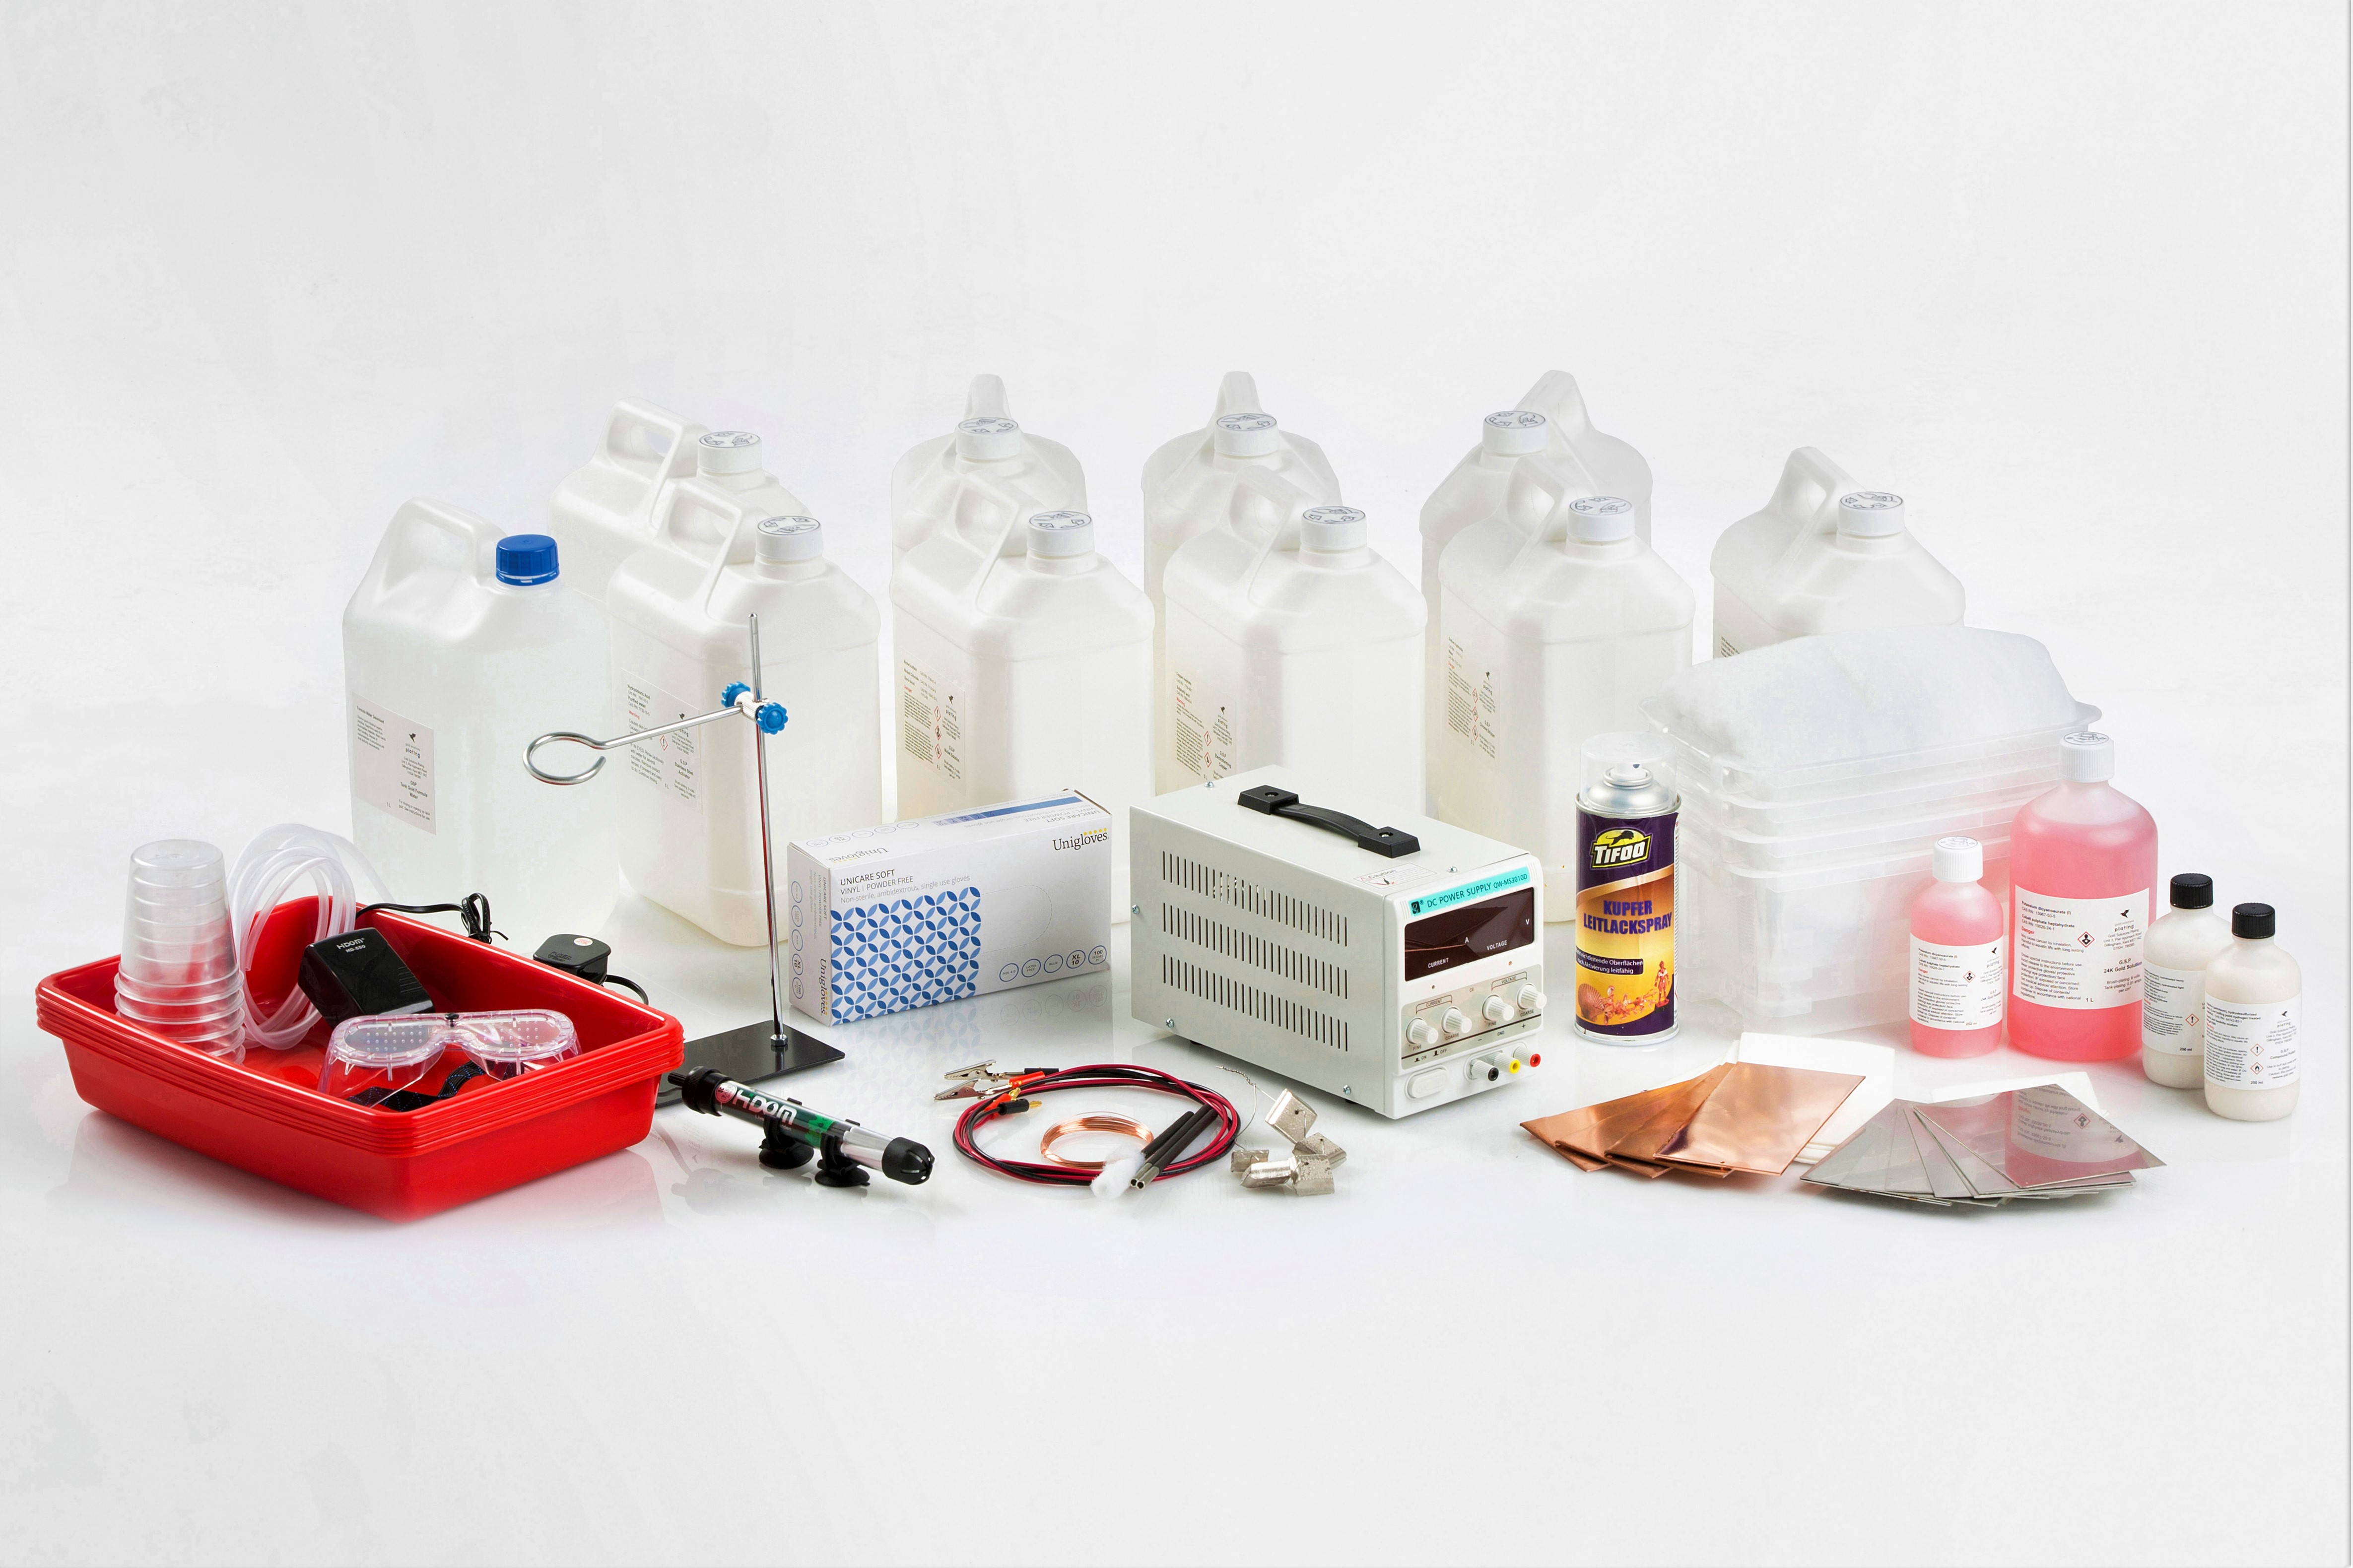 GSP Prodigy 5.0 Electroforming / Electroplating Kit Contents